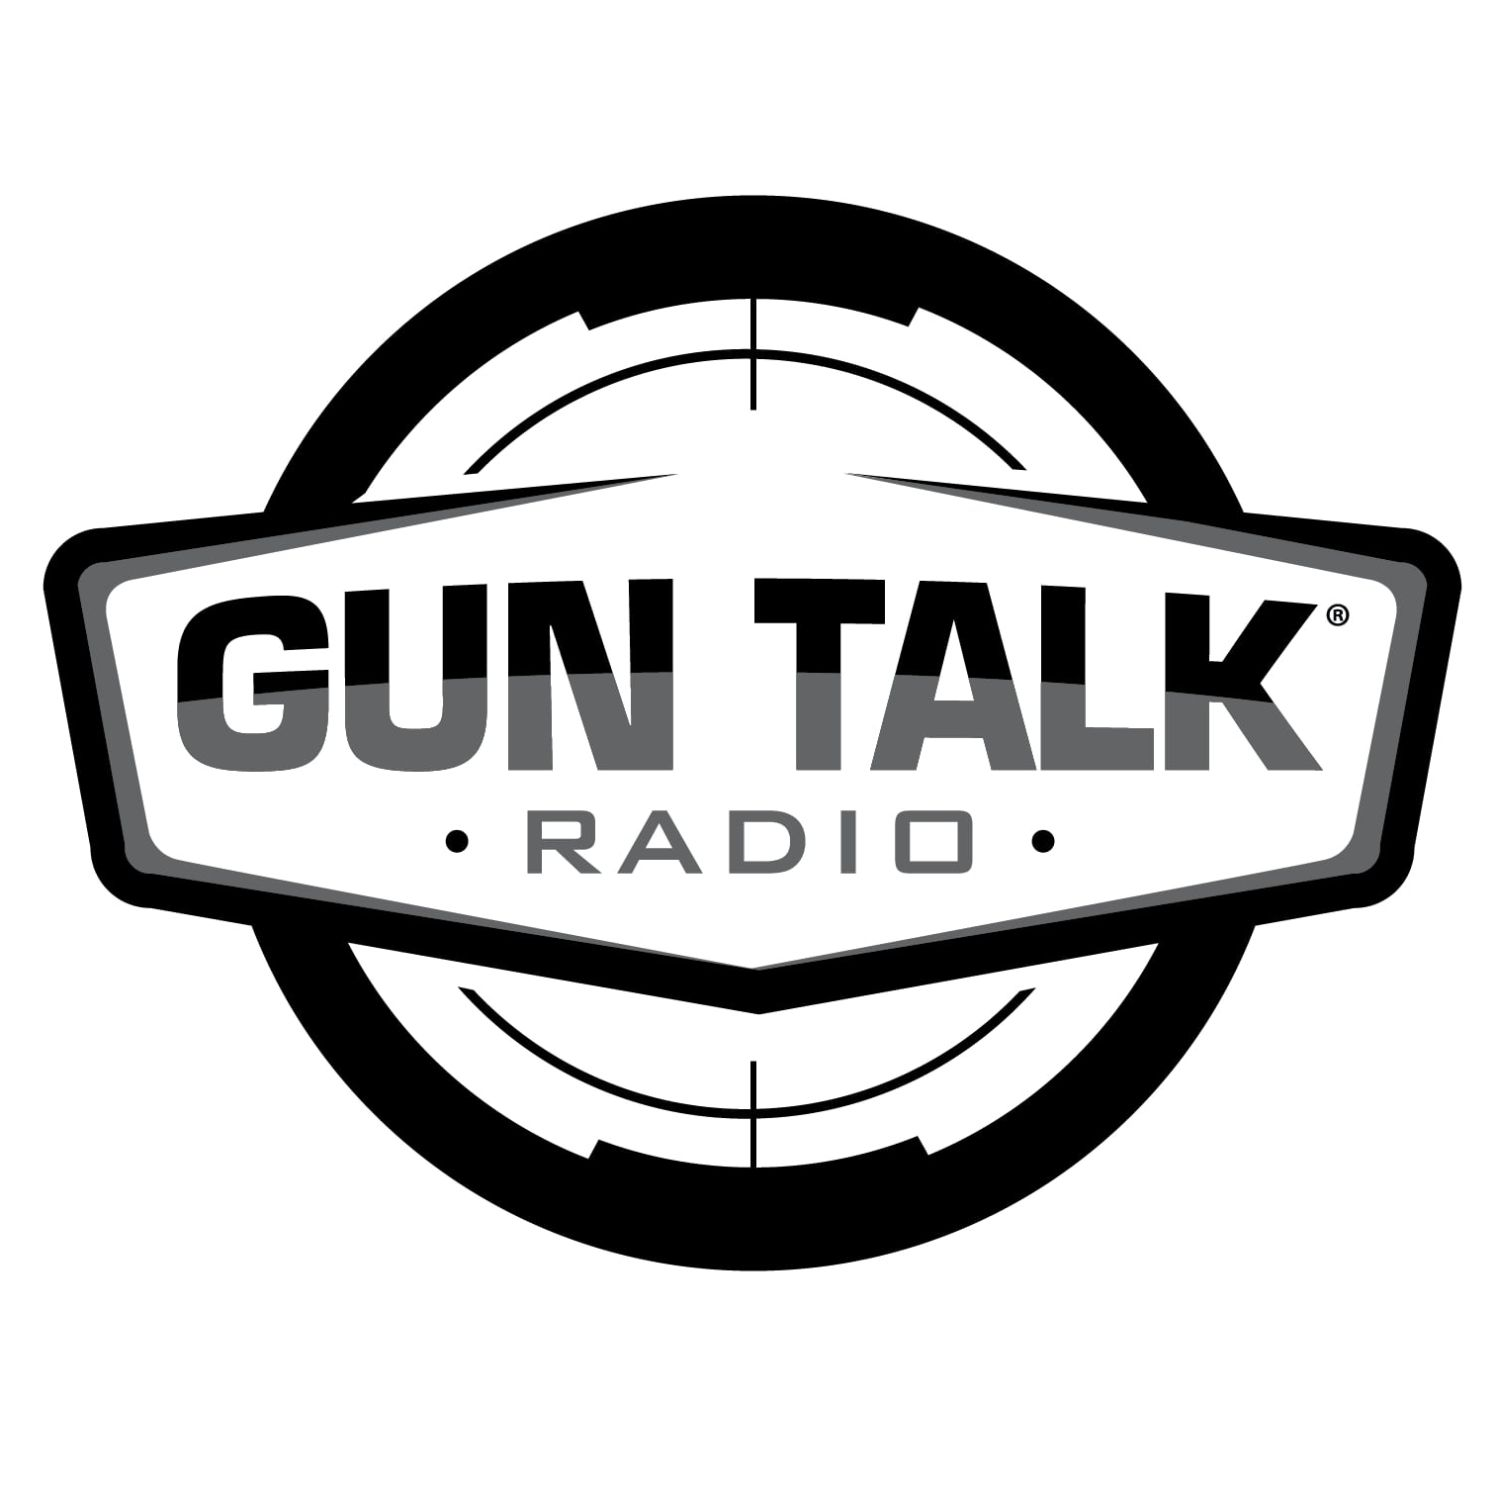 Artwork for Guntalk 2007-06-24 Part C